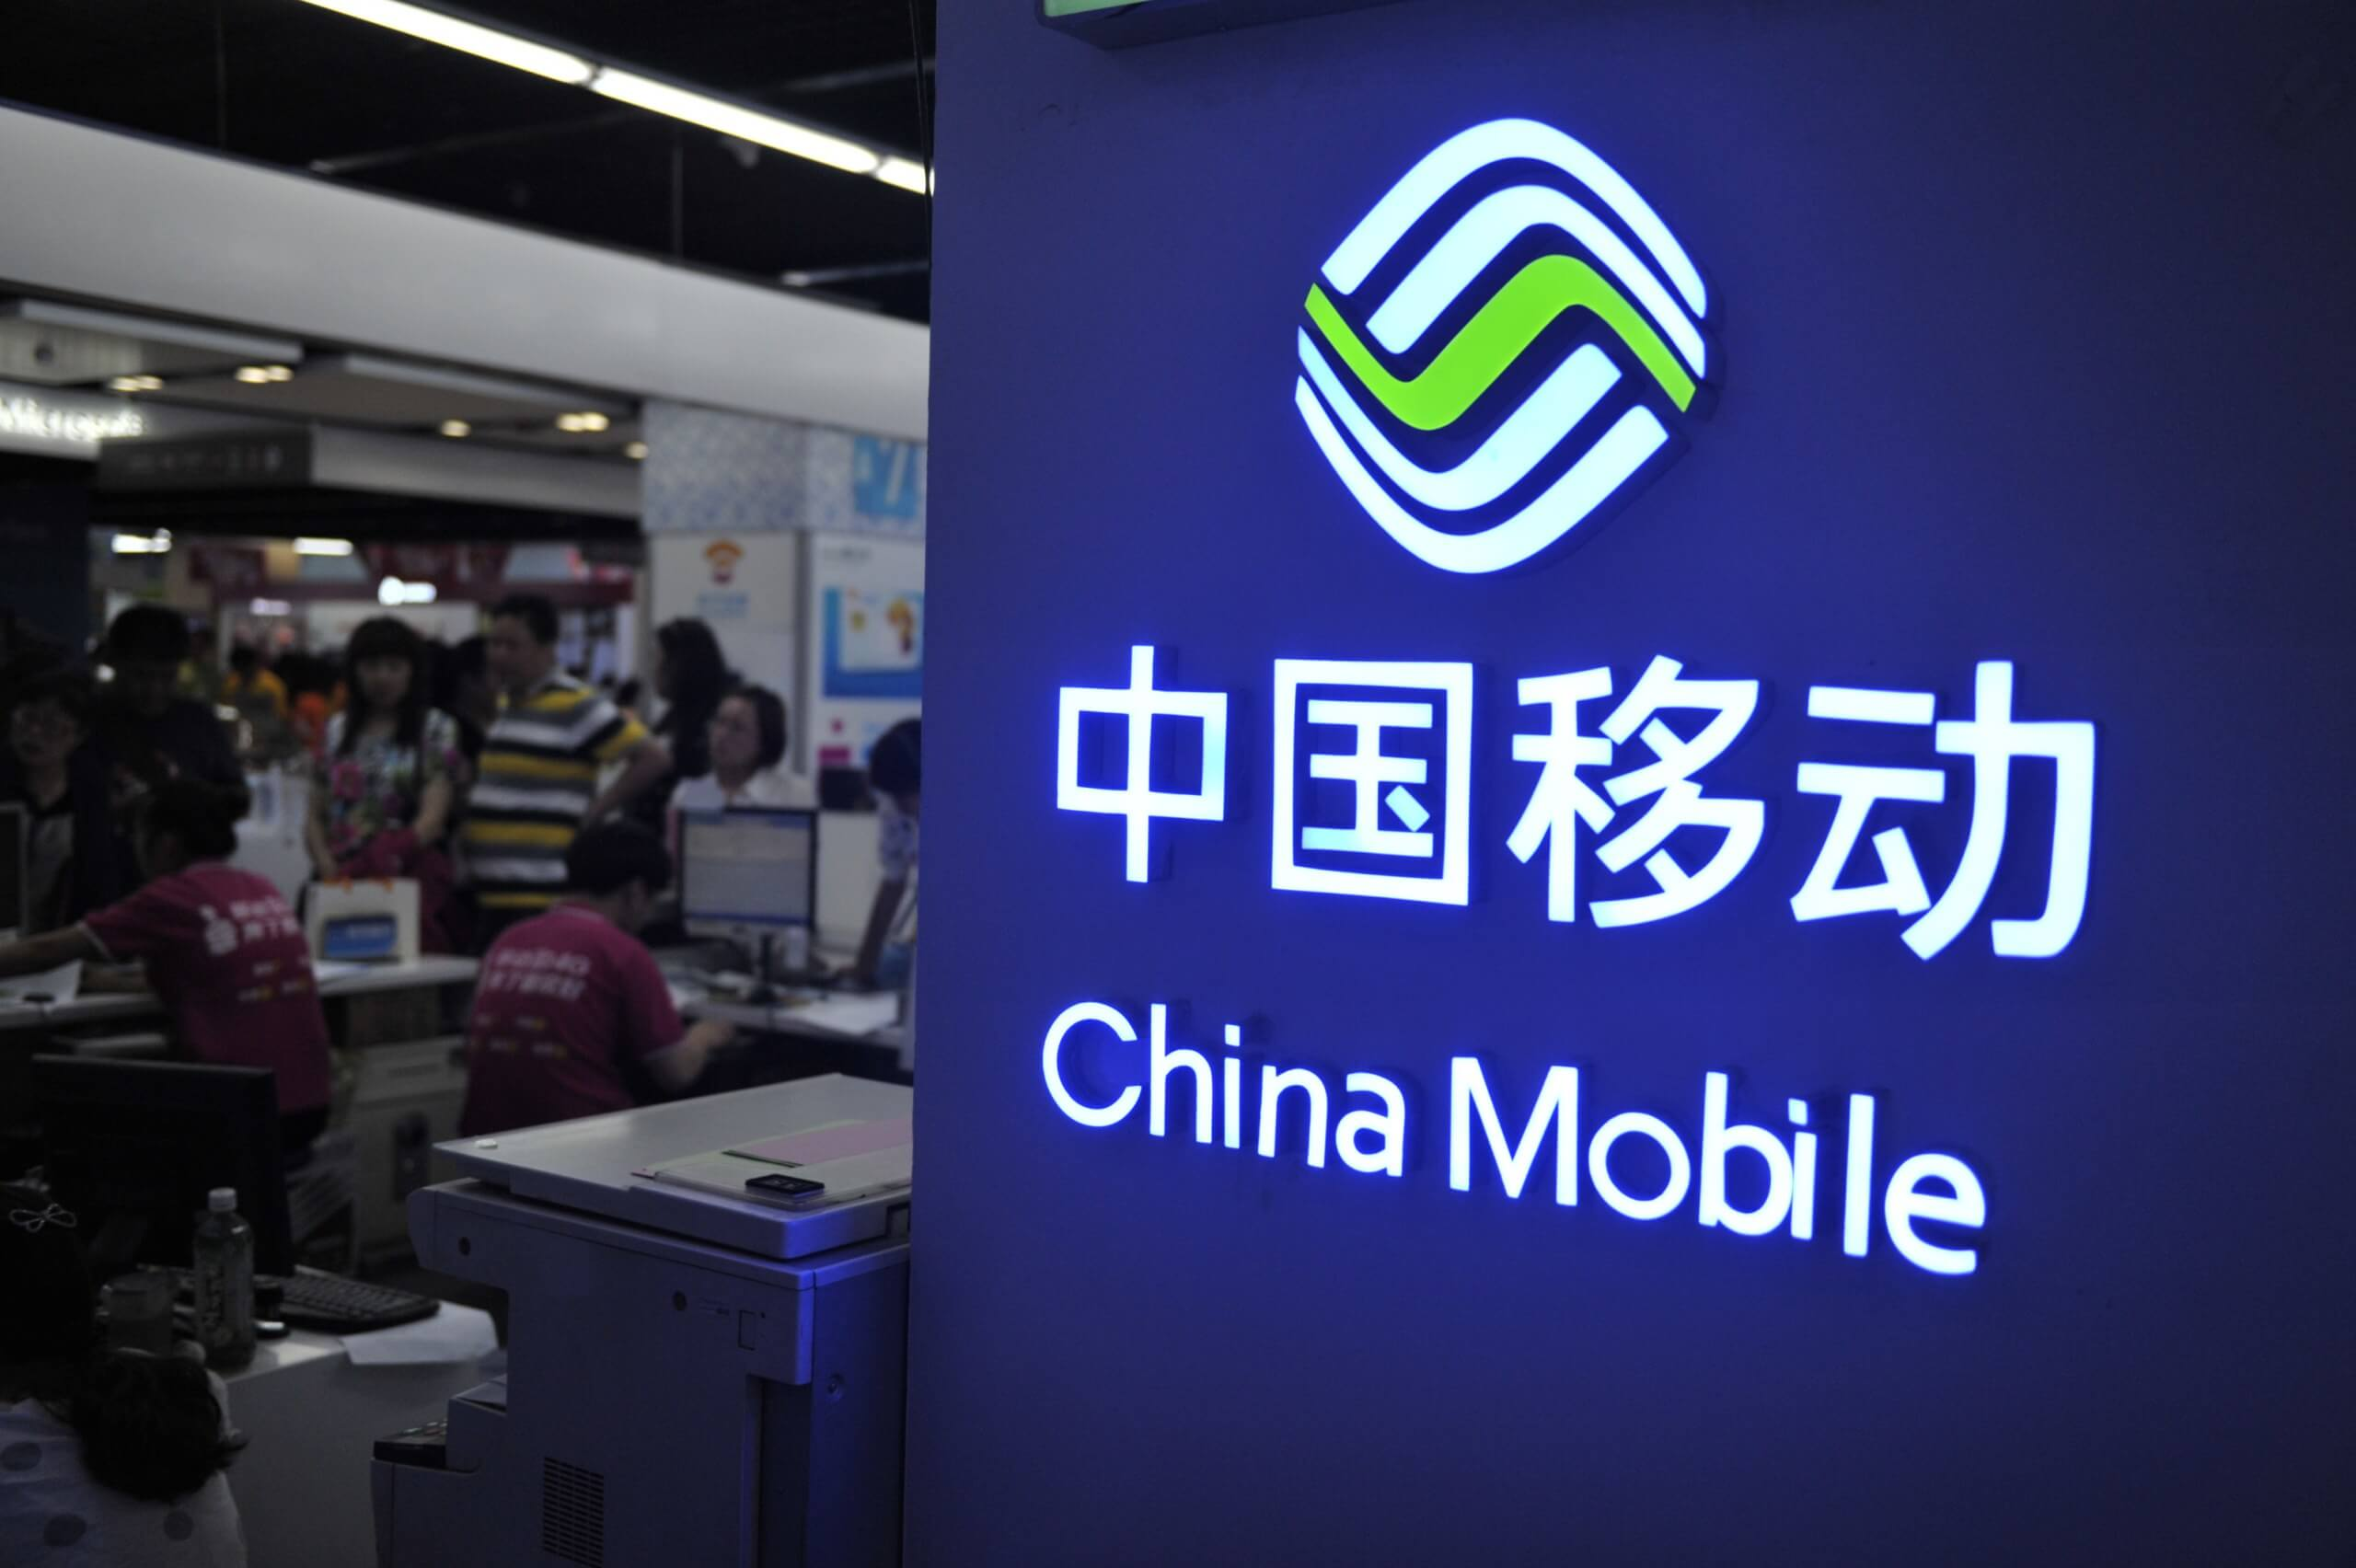 China slams U.S. for 'unreasonable suppression' of telecom giant 'China Mobile'